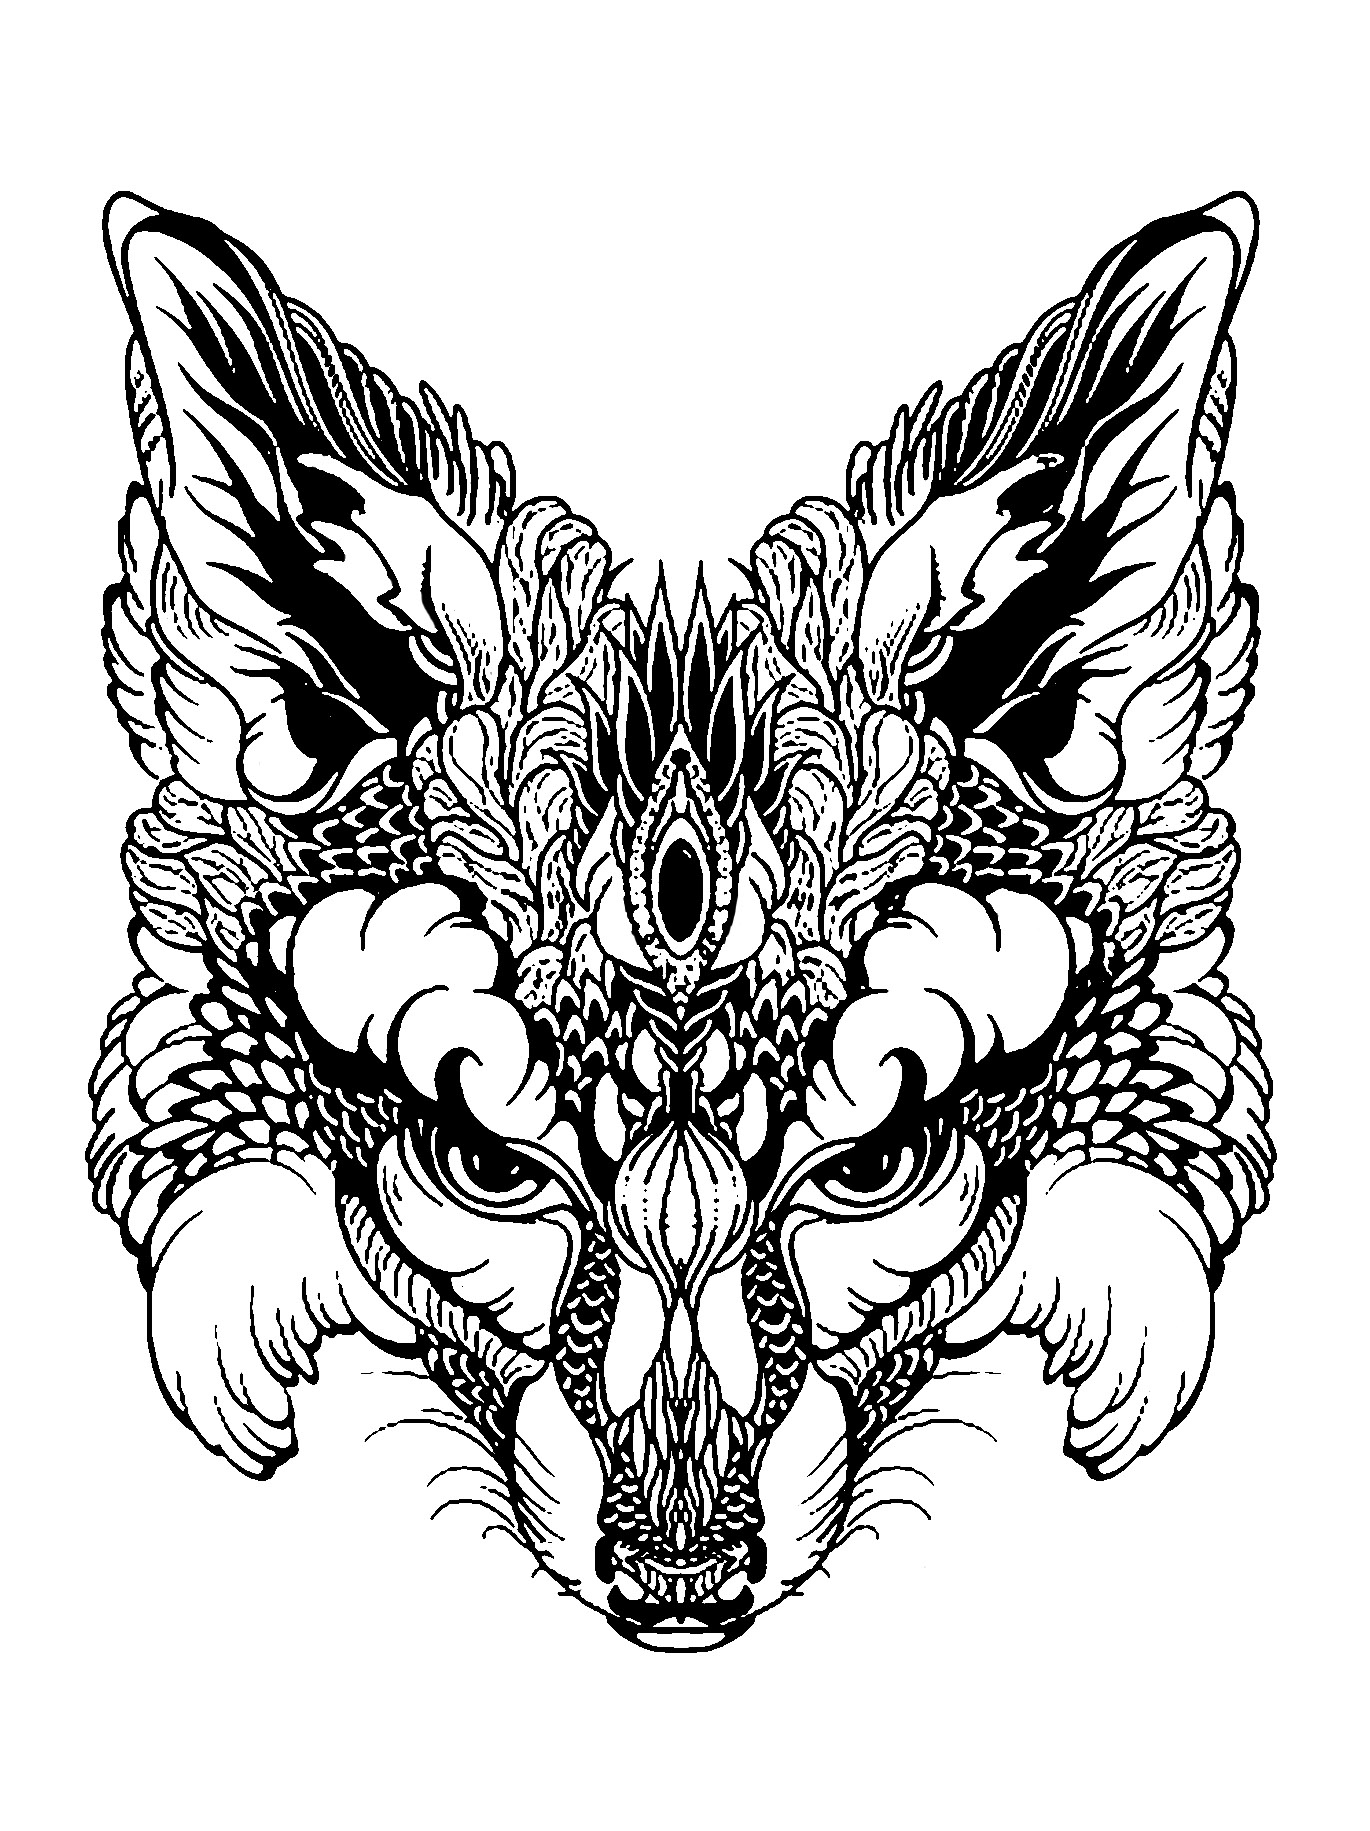 fox coloring pages for adults Fox head   Foxes Adult Coloring Pages fox coloring pages for adults